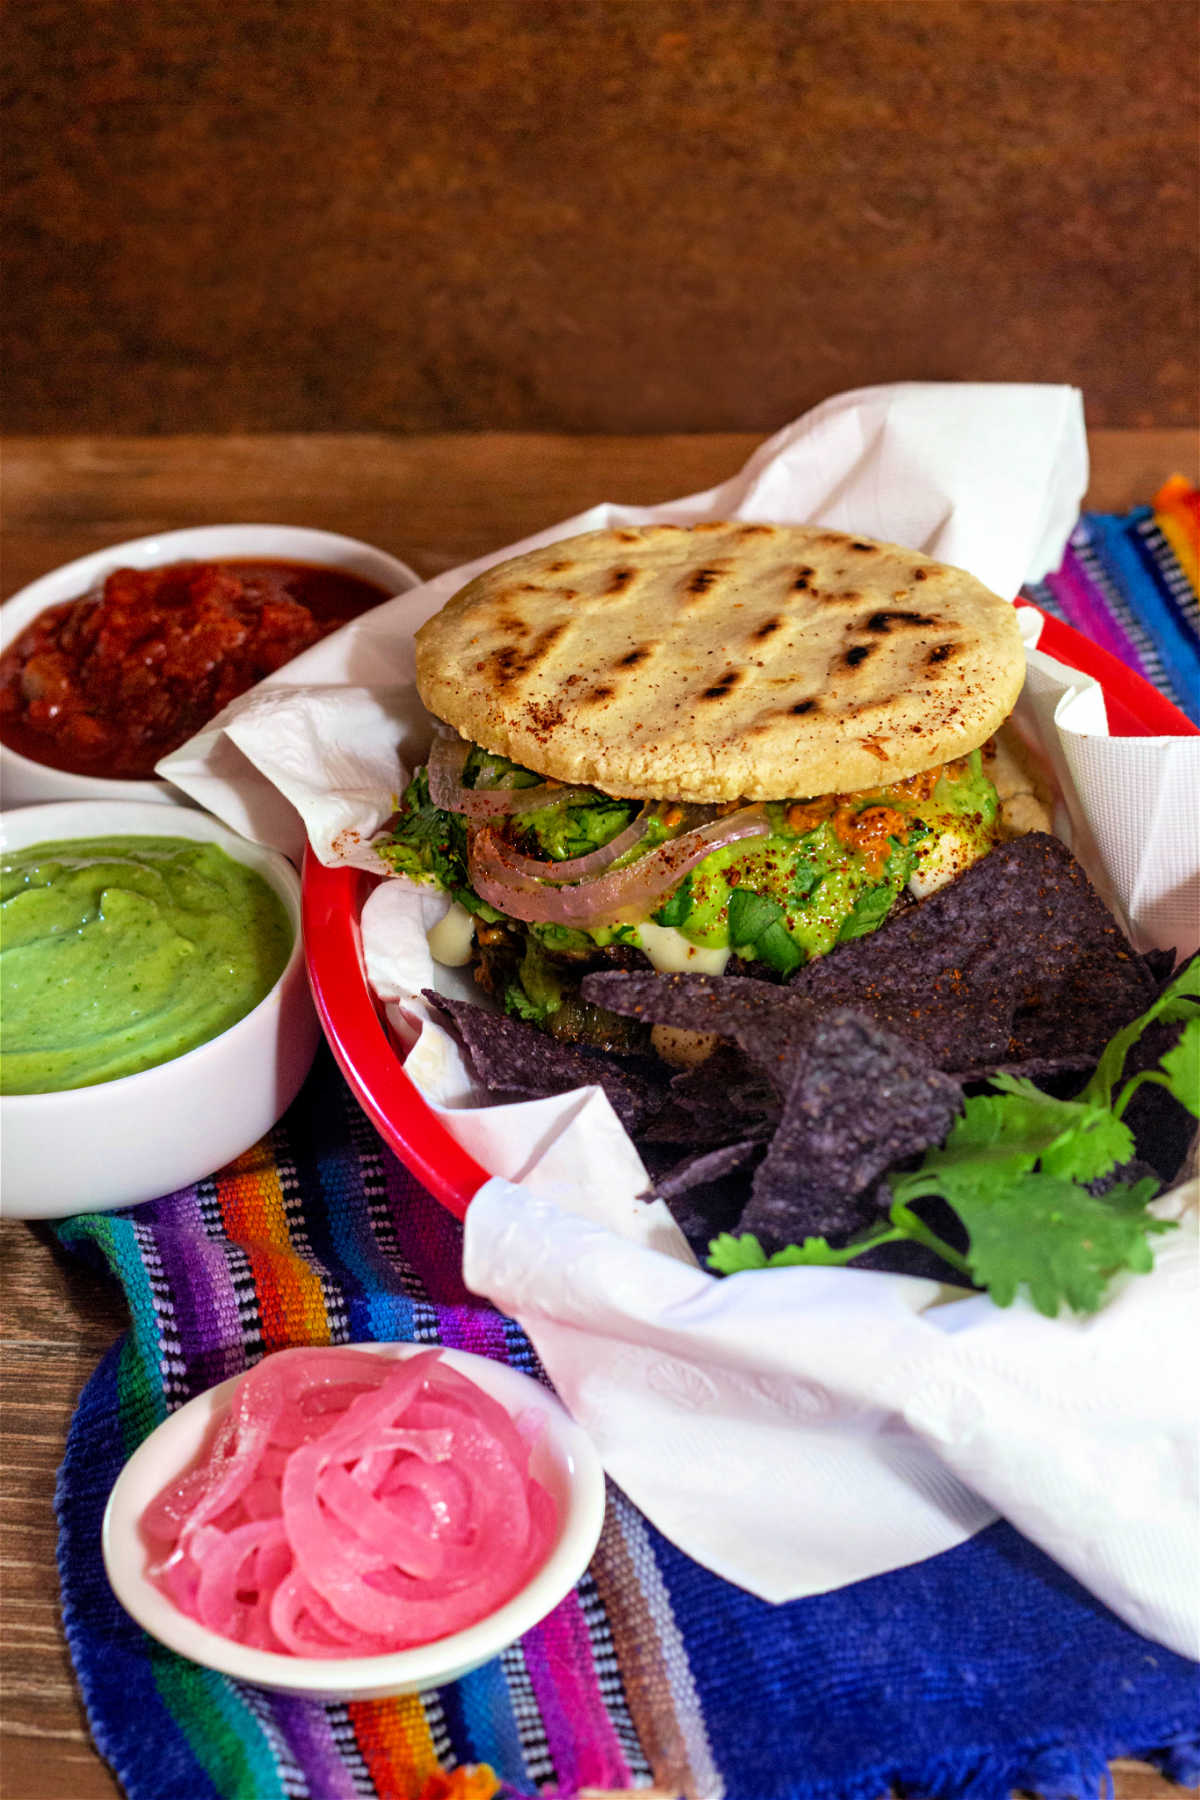 A burger with blue corn chips and ramekins of toppings.